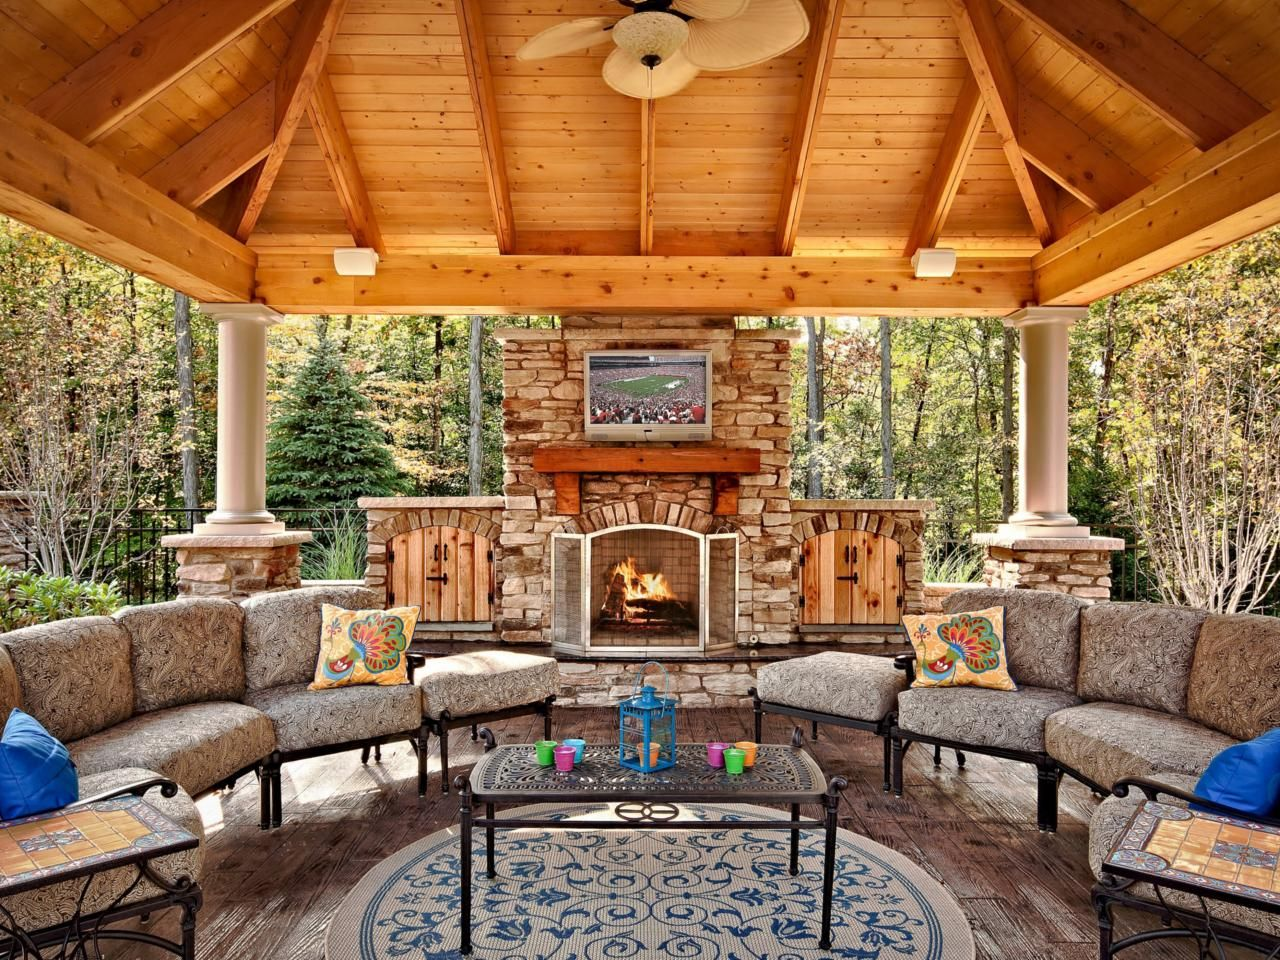 Essentials For Creating A Beautiful Outdoor Room Outdoor Fireplace Plans Outdoor Rooms Outdoor Fireplace Designs